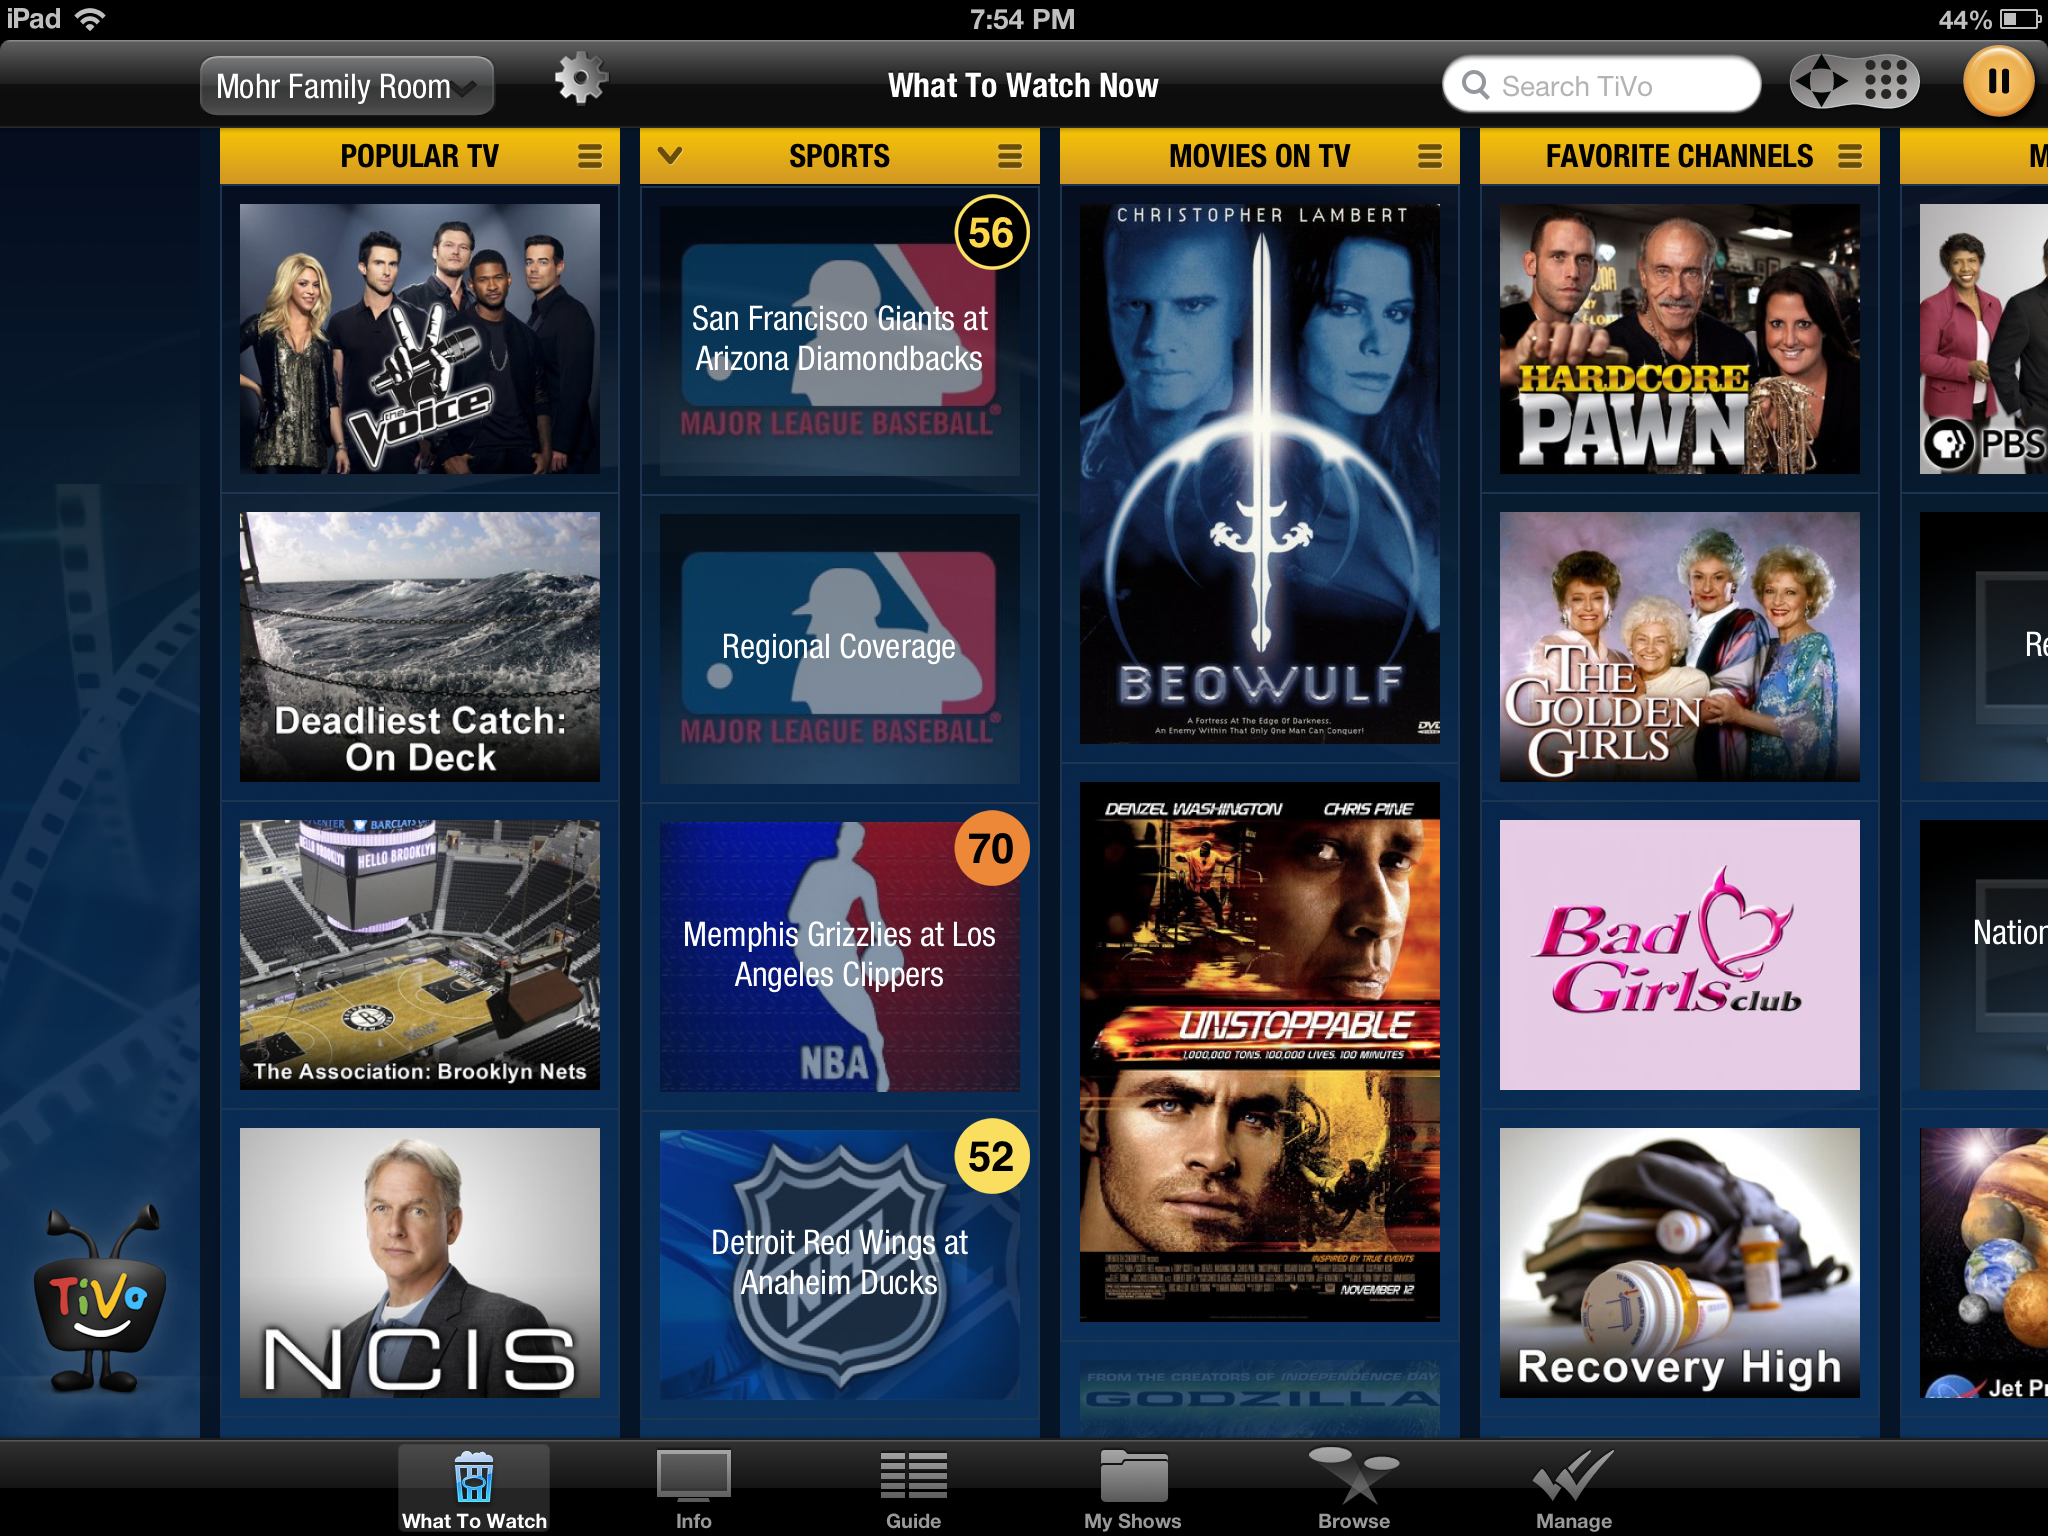 TiVo's app for the iPhone and iPad can now stream to an Apple TV.